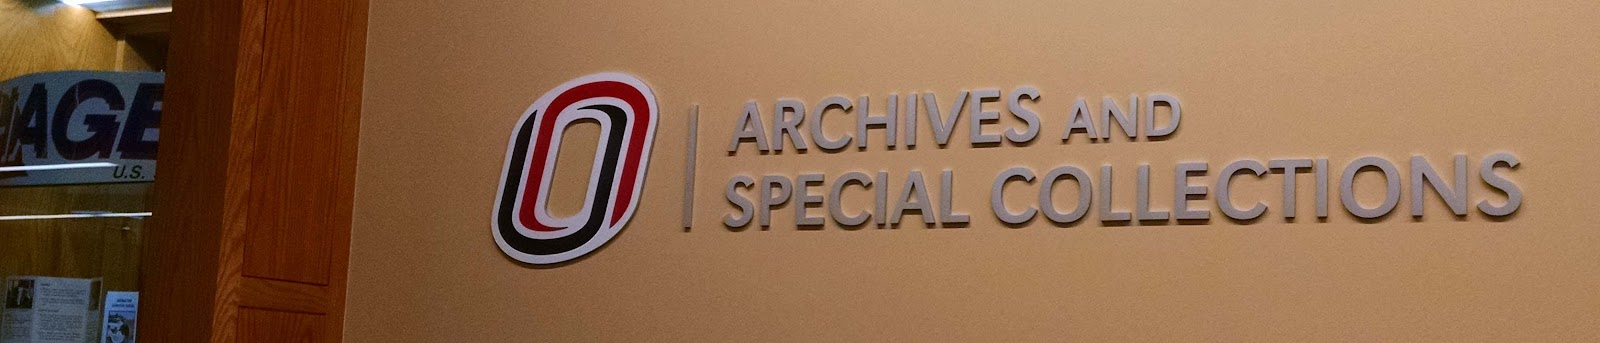 UNO Criss Library's Archives & Special Collections